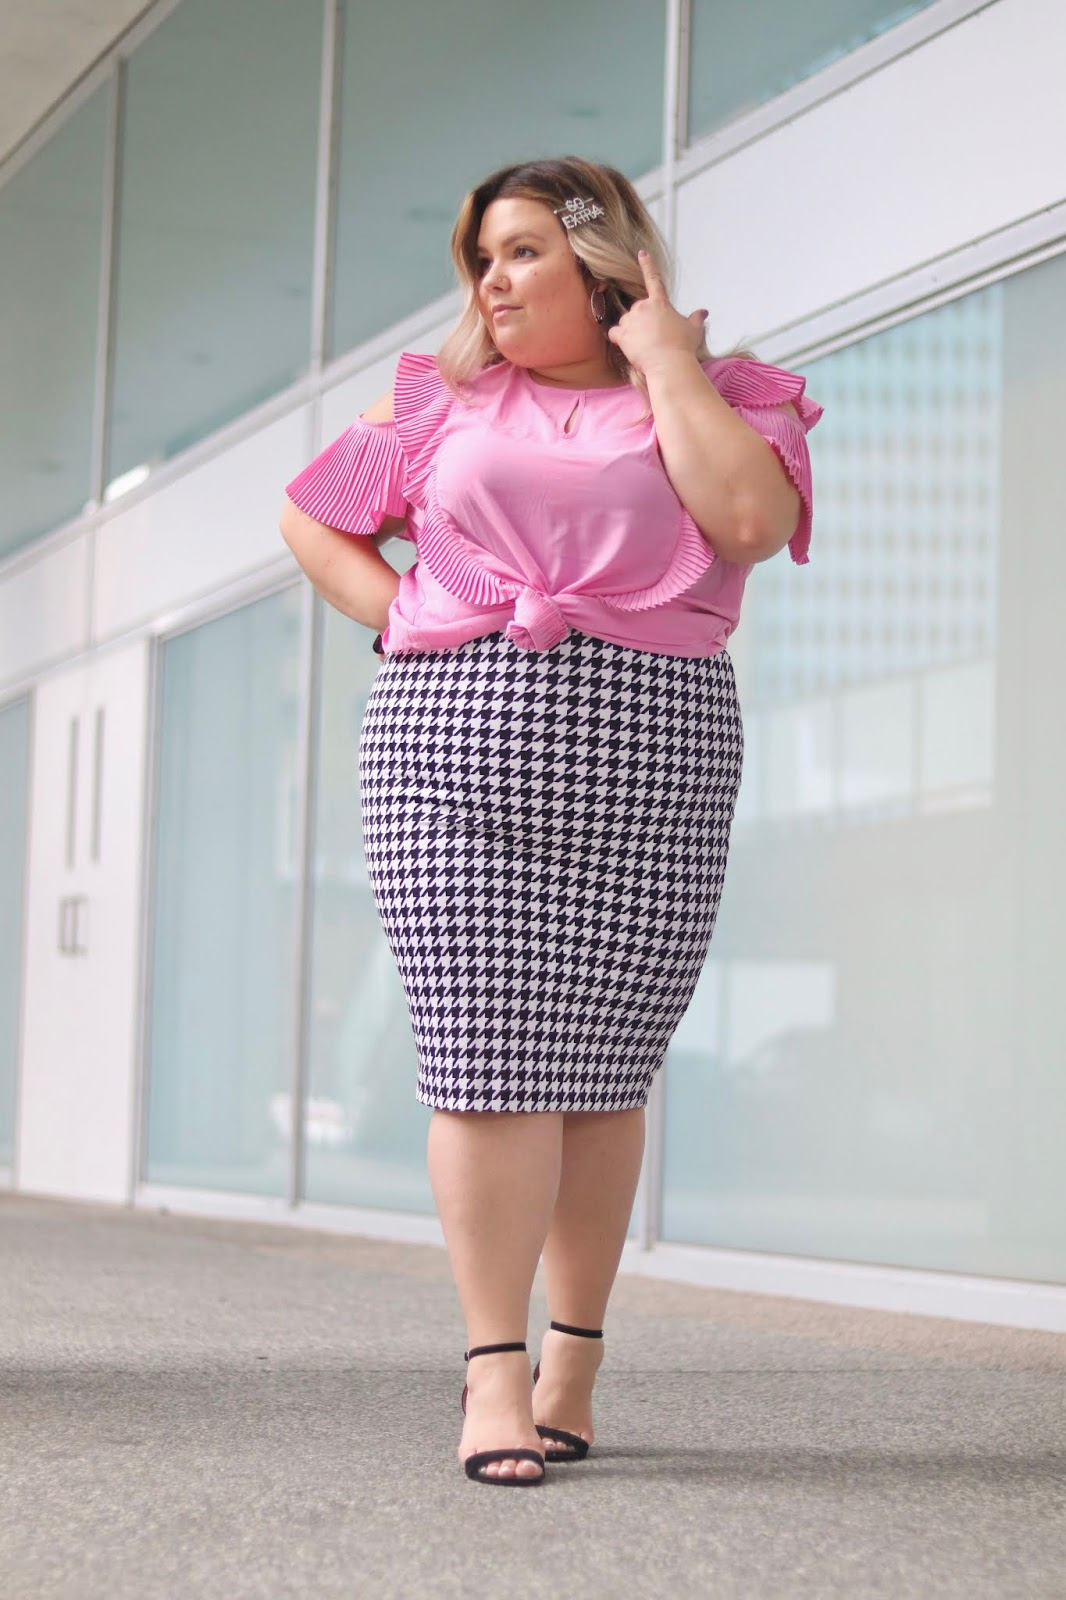 Chicago Plus Size Petite Fashion Blogger, influencer, YouTuber, and model Natalie Craig, of Natalie in the City, partners with Gordmans for Breast Cancer Awareness Month to raise money for the The Breast Cancer Research Foundation.